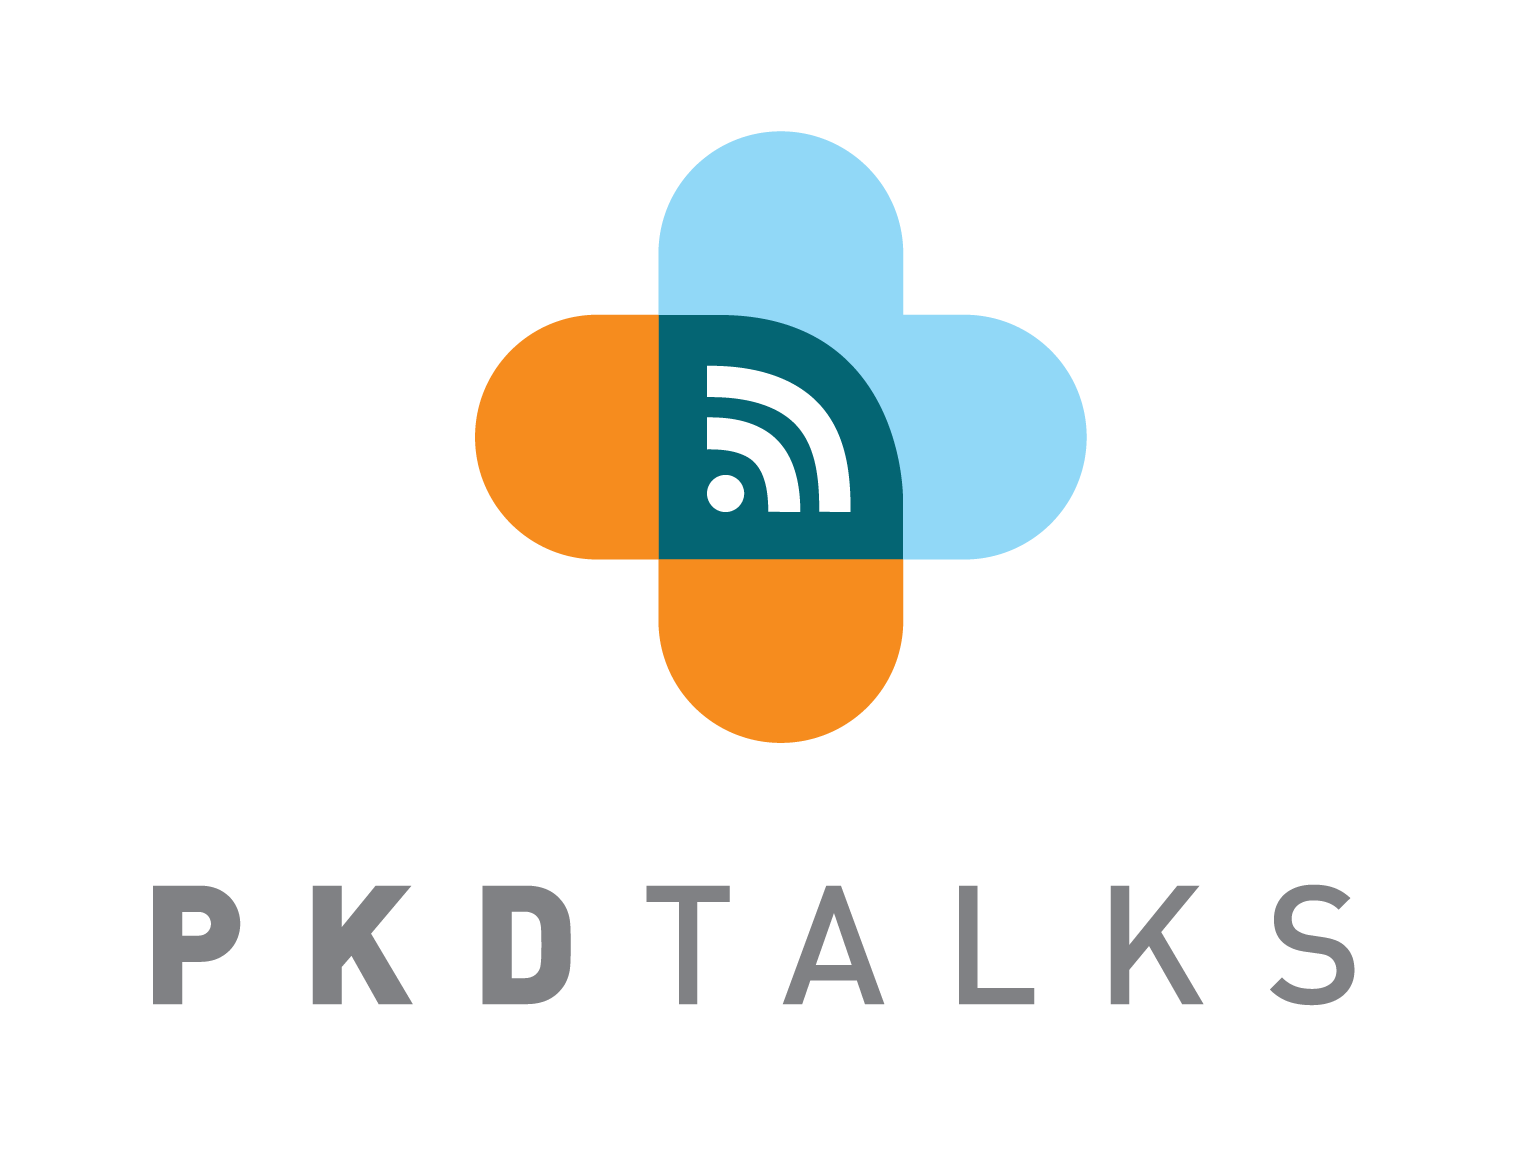 PKD_Talks_Logo_(002).png